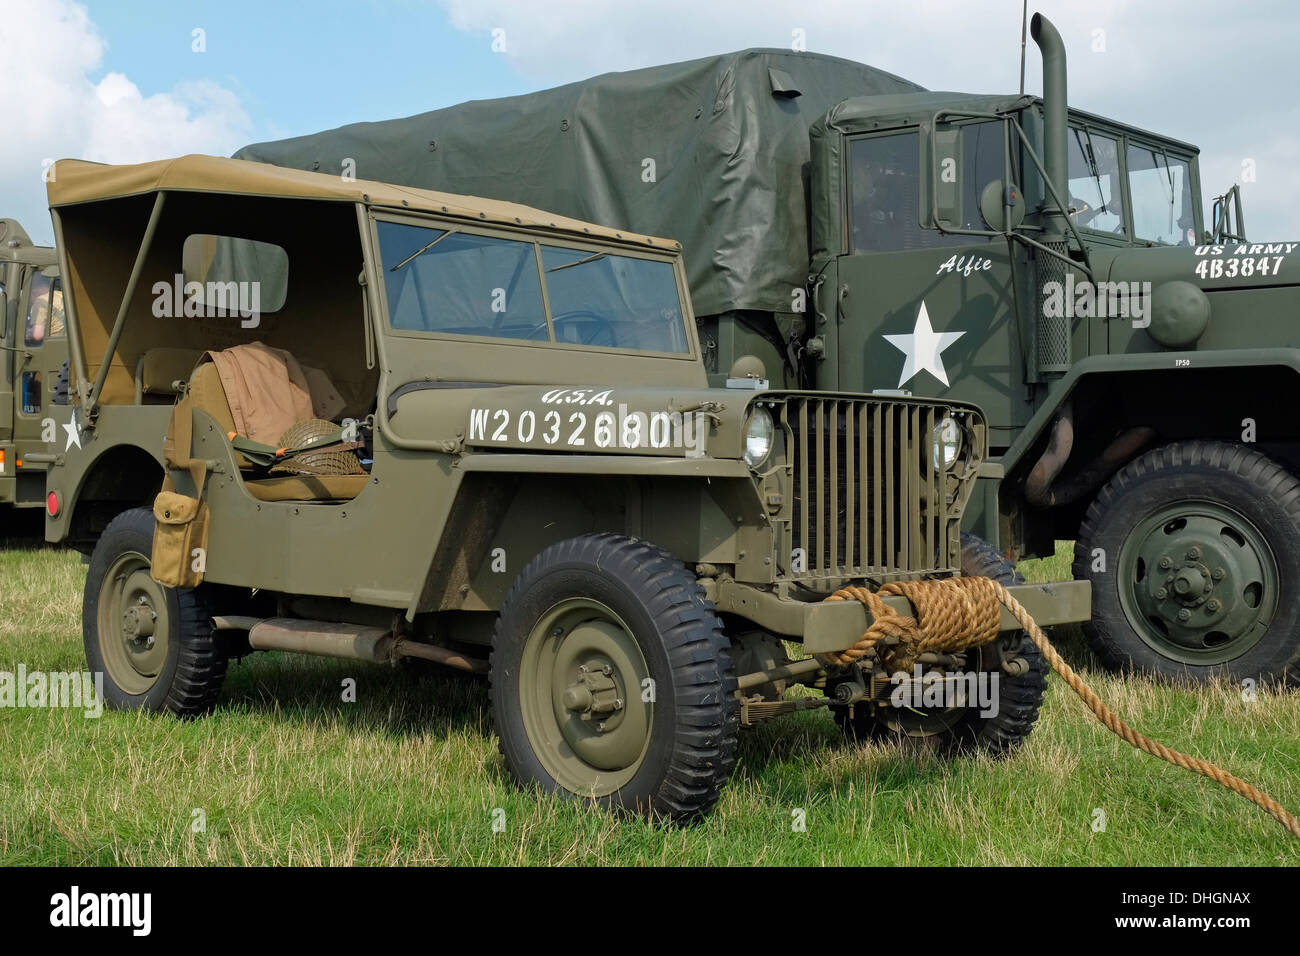 A 1941 willys mb slat grill jeep powered by a 2 2 litre go devil